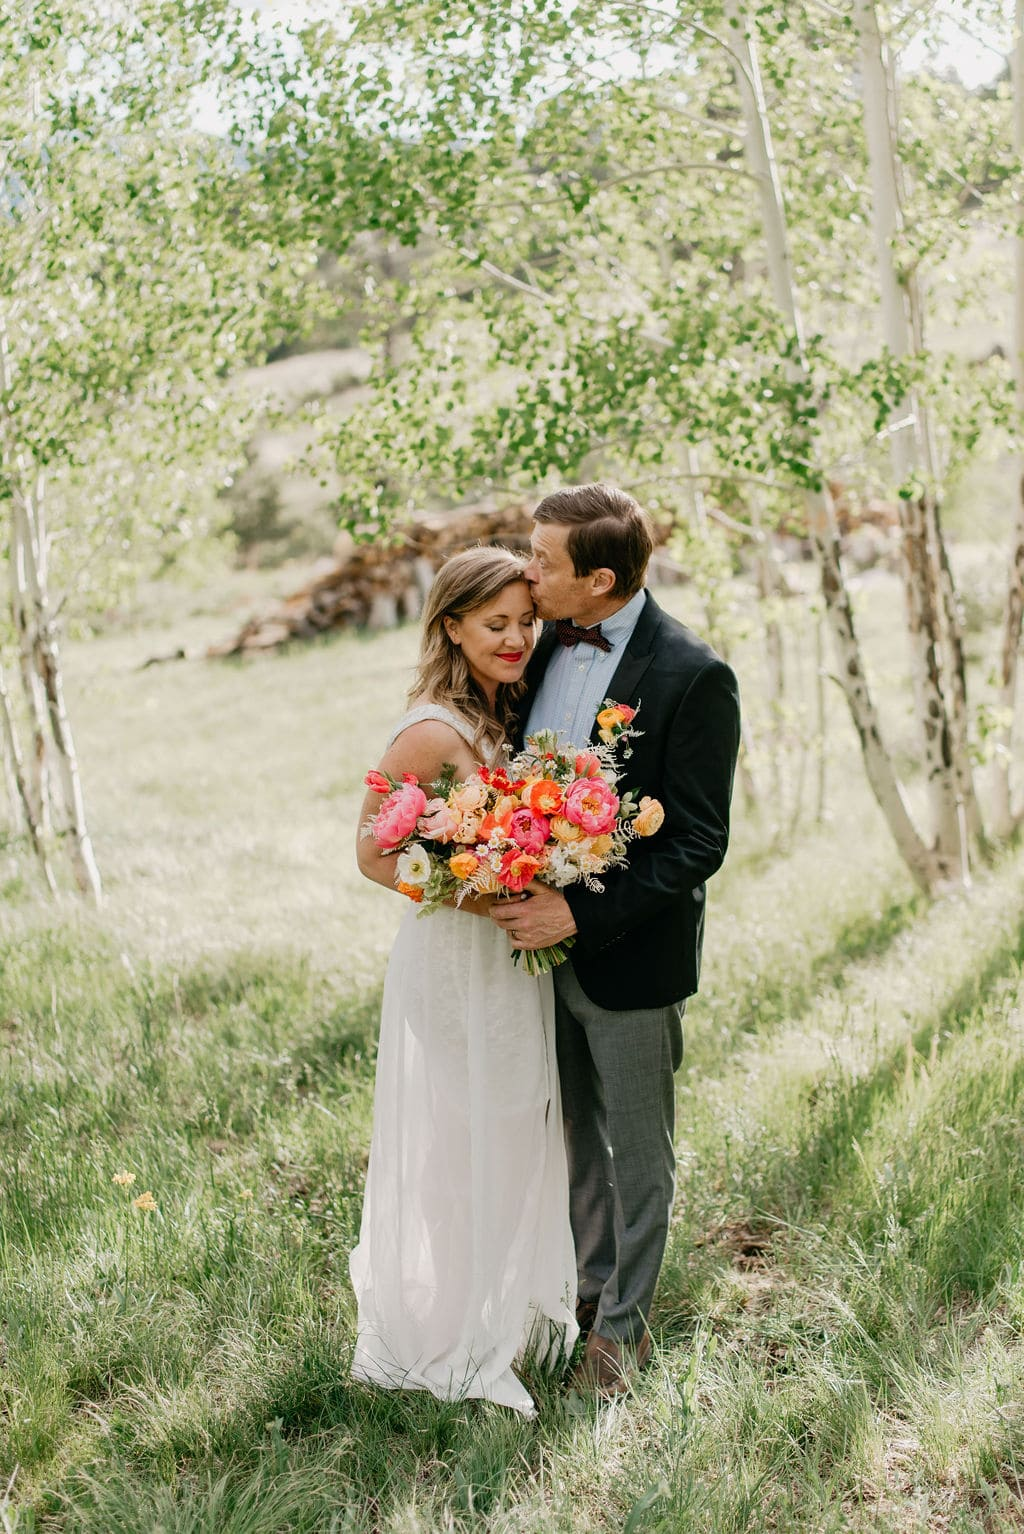 Romantic bride and groom portraits in golden colorado aspen grove